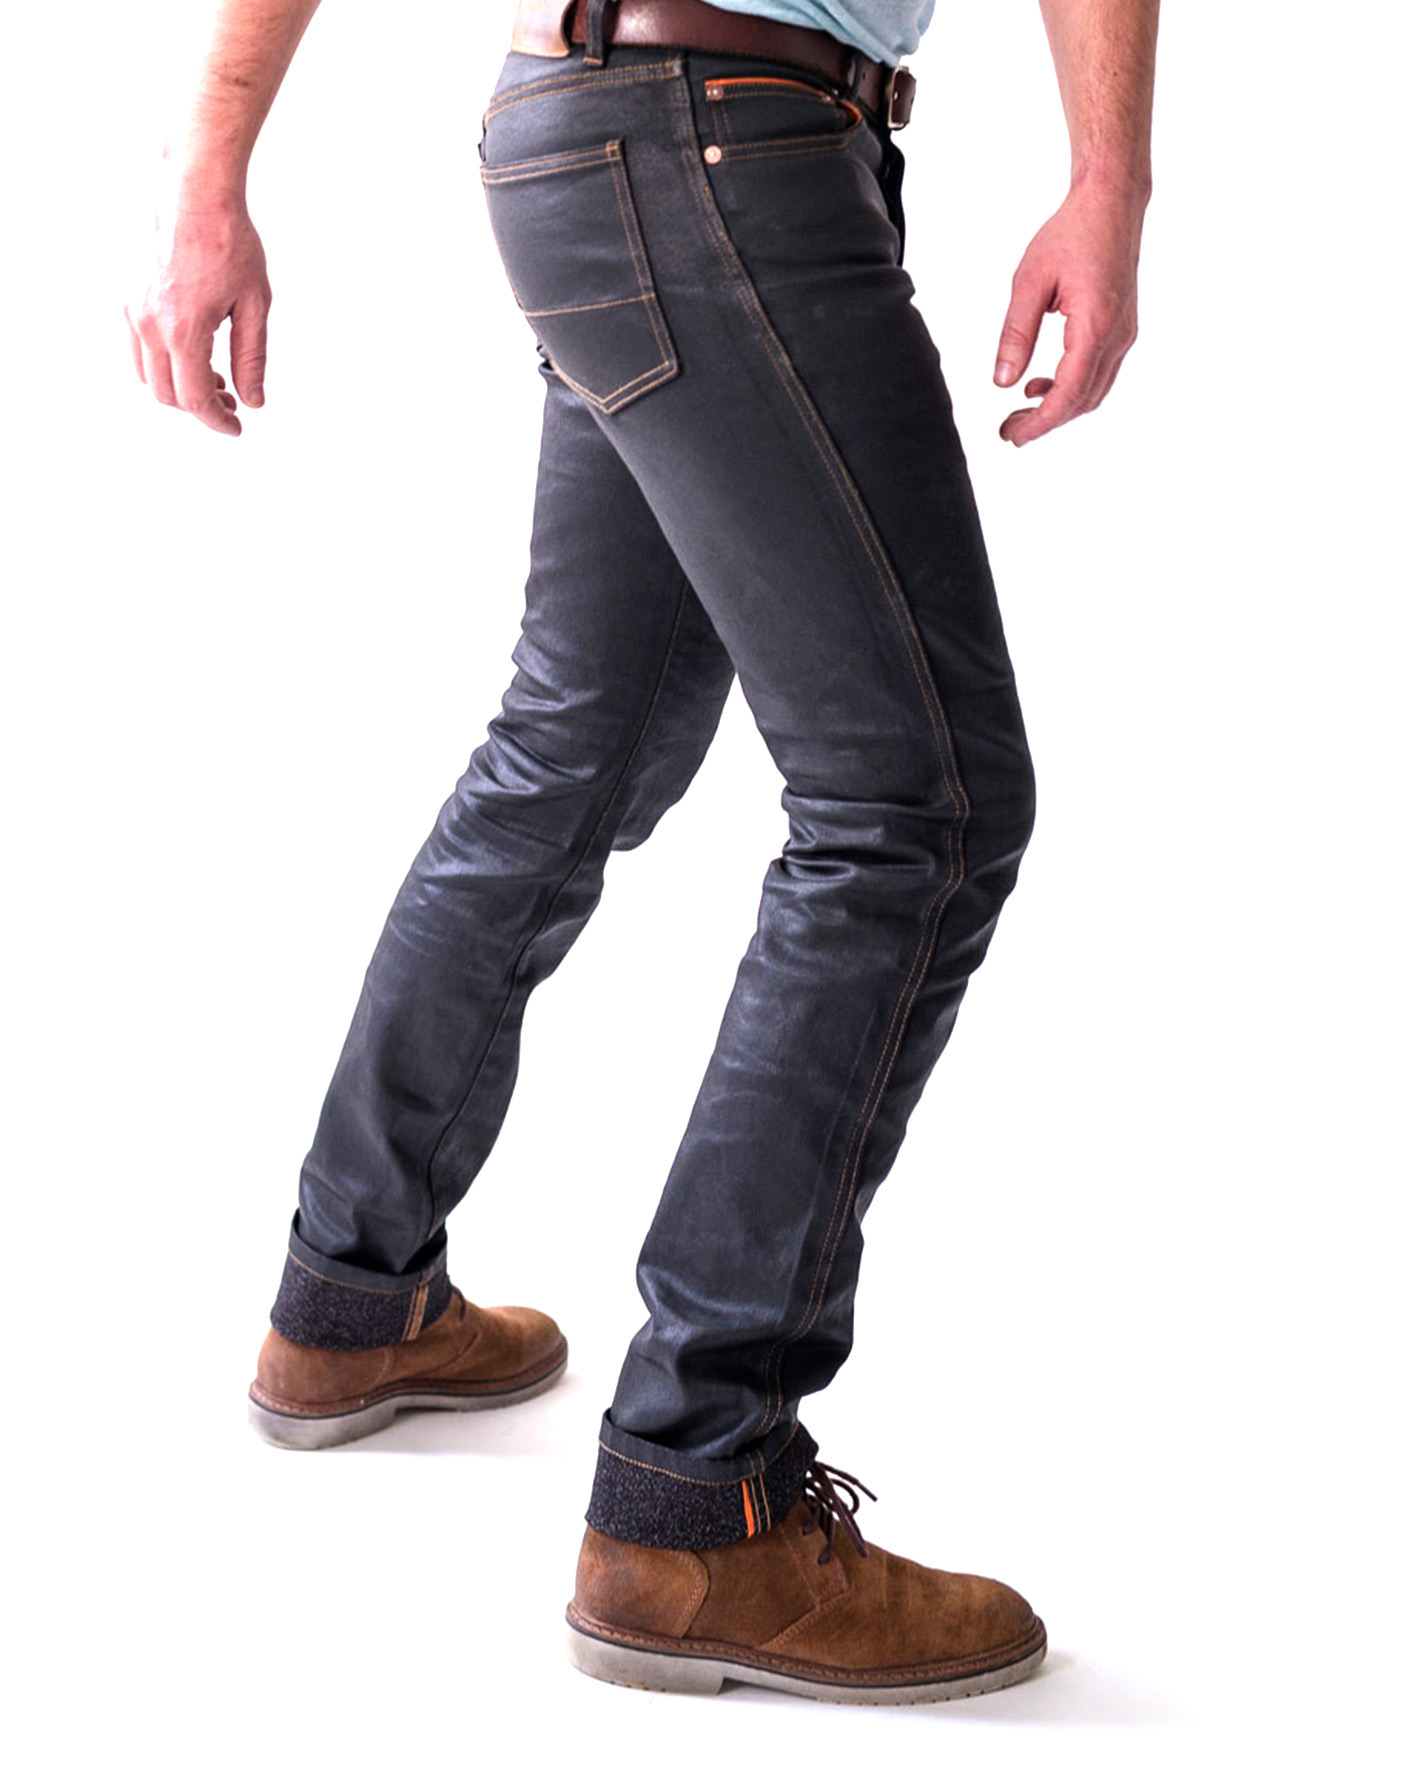 HIP'STER - A MODERN, SLIM-FIT JEAN WITH BOLID'STER'S NEW ARMALITH®2.0 SKIN WATER-REPELLENT FABRIC. STAY SAFE, STAY STYLISH, STAY DRY.